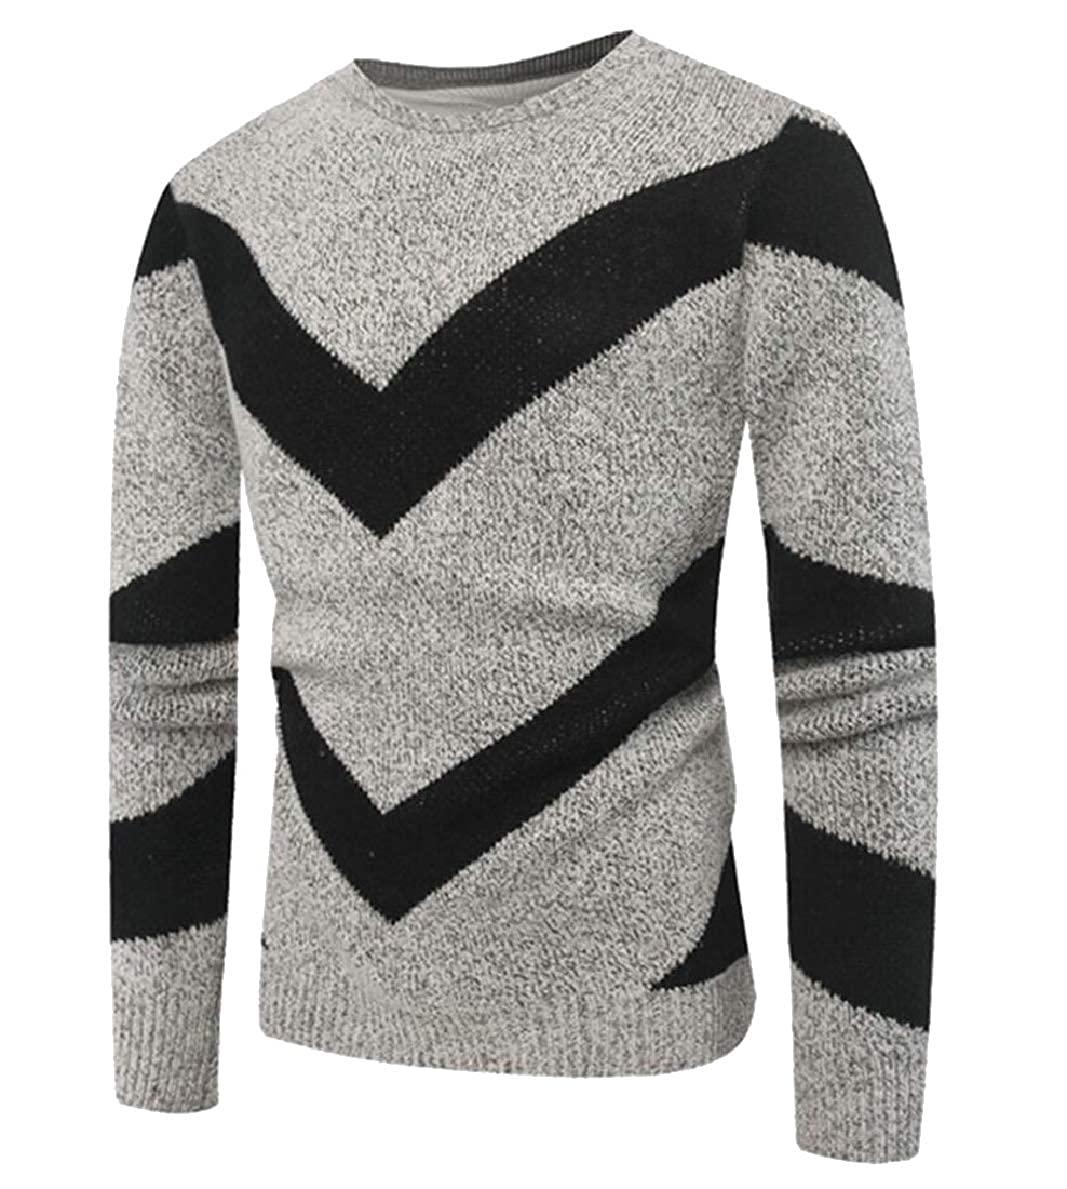 FLCH+YIGE Mens Autumn Color Block Knitted Long Sleeve Crew Neck Pullover Sweaters